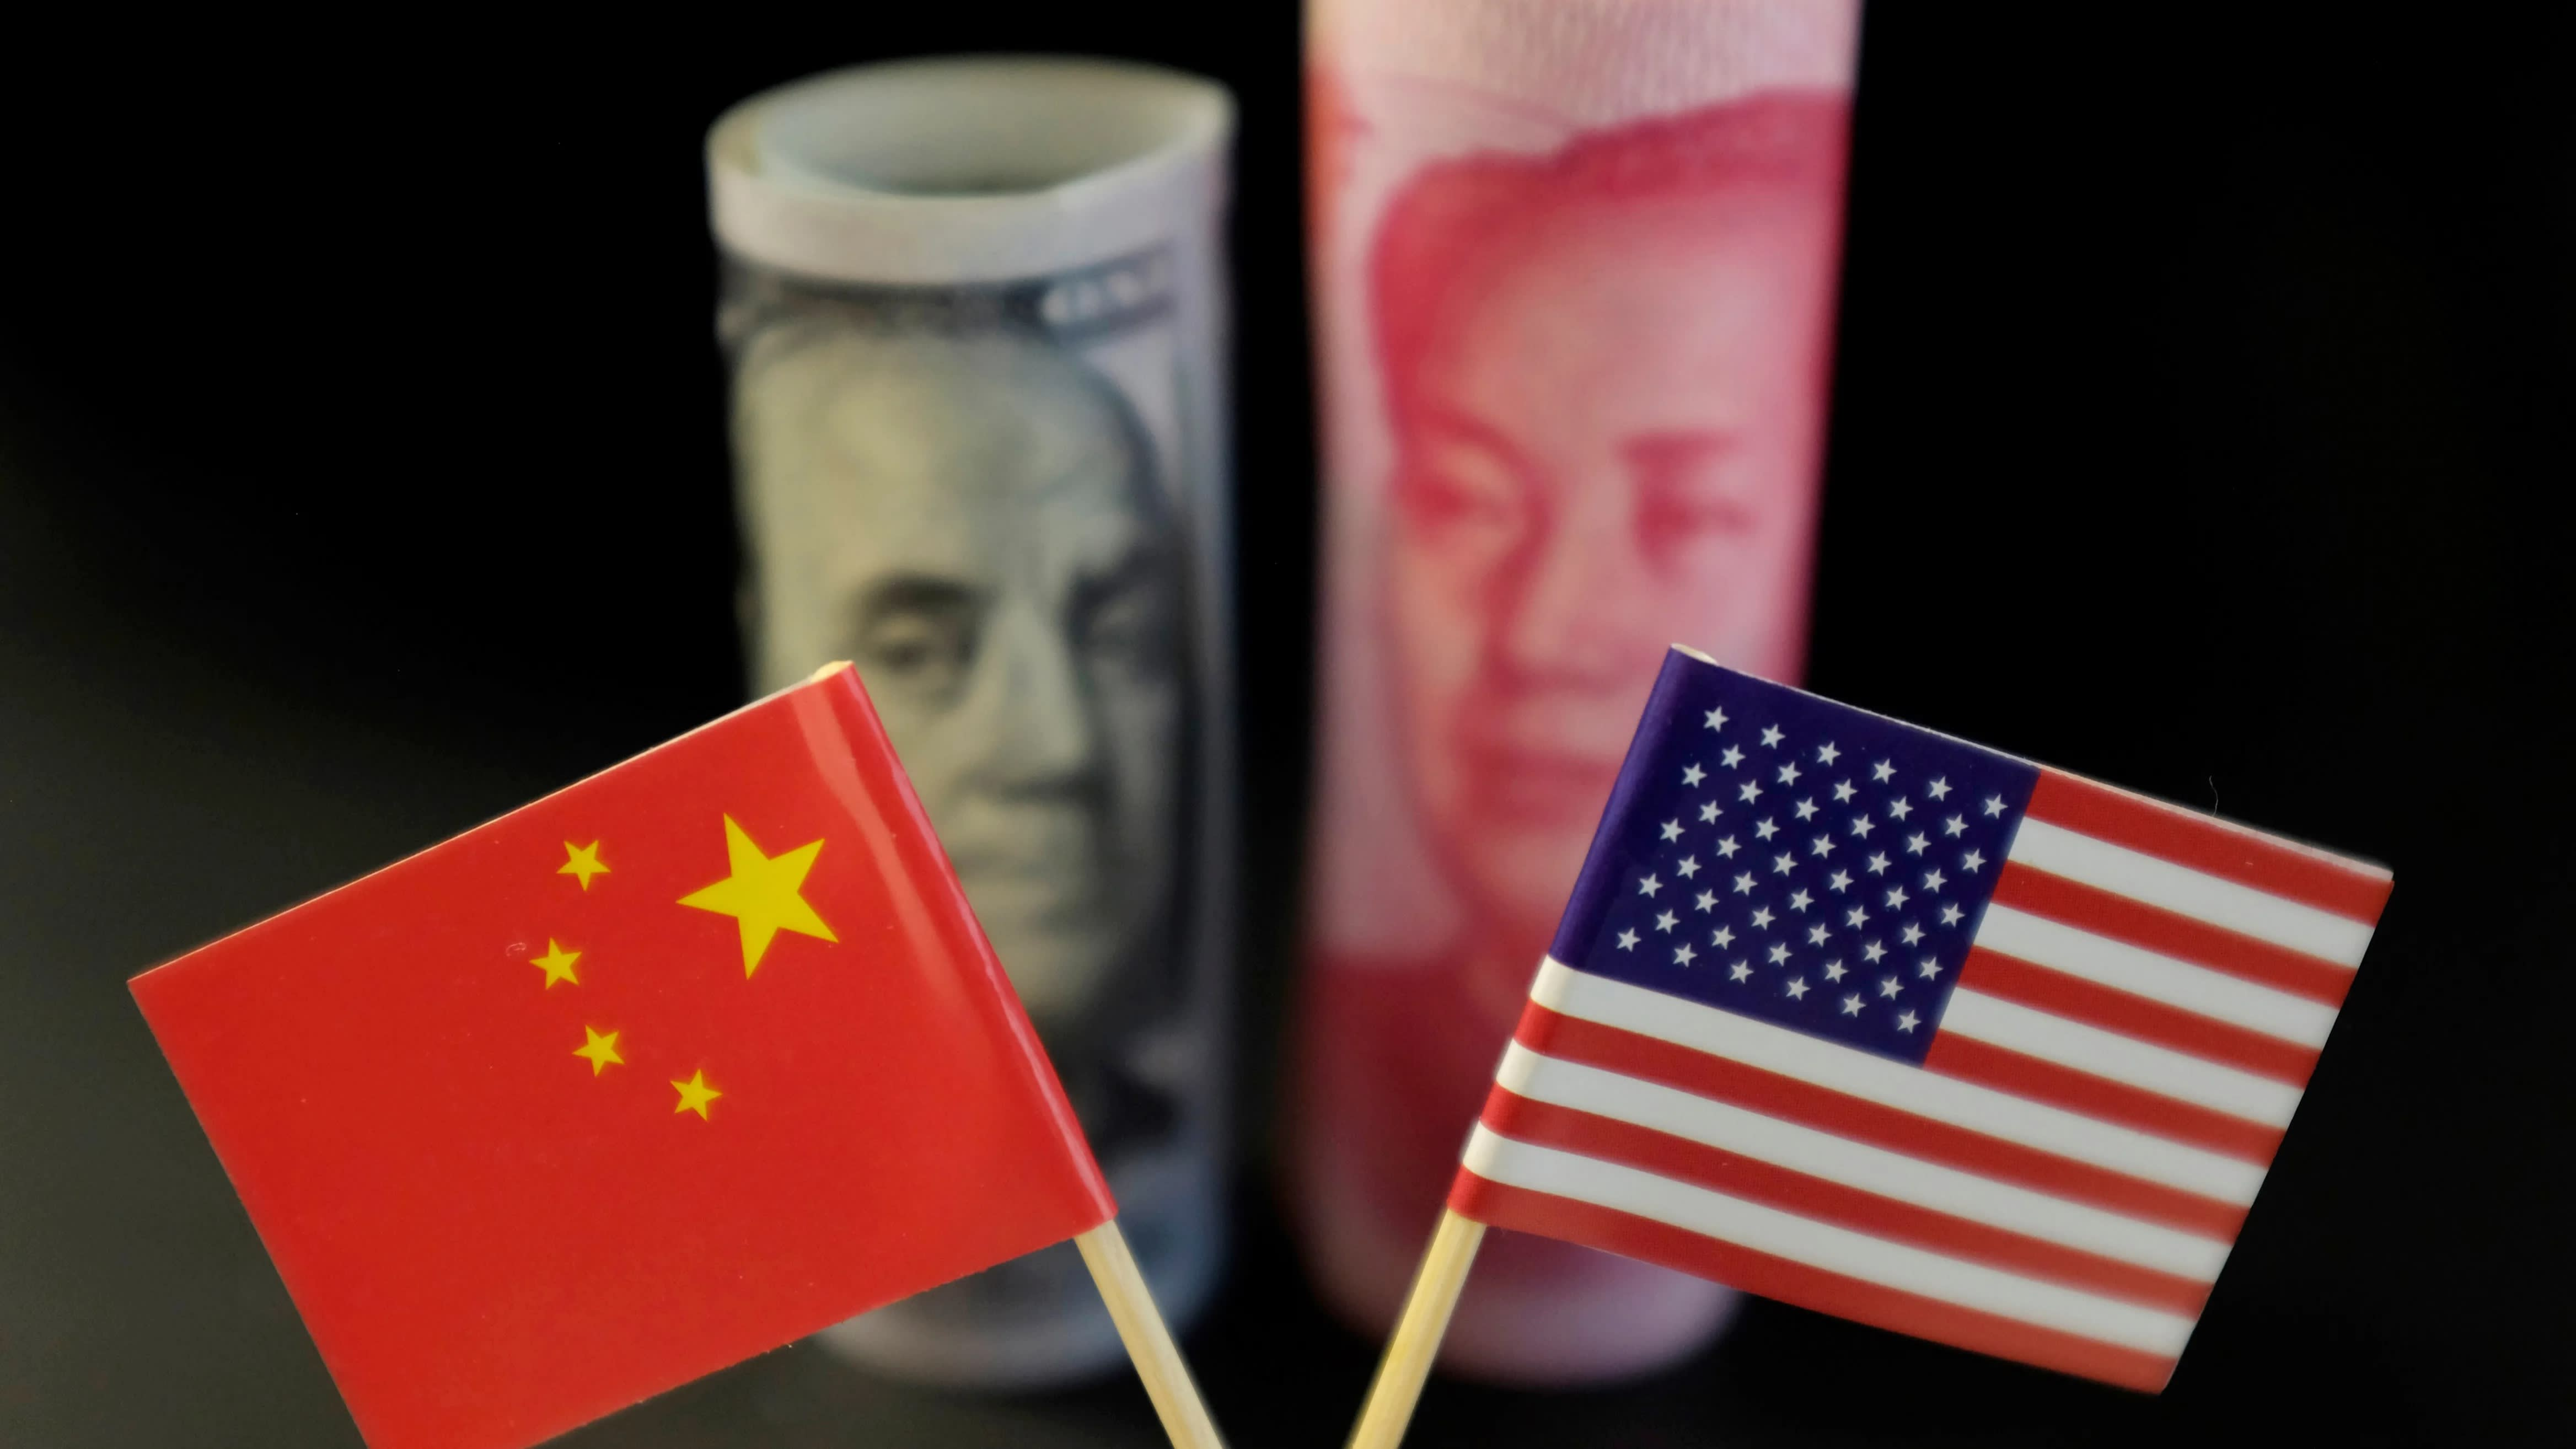 US and China to fight for top GDP in 2060 while Japan dips